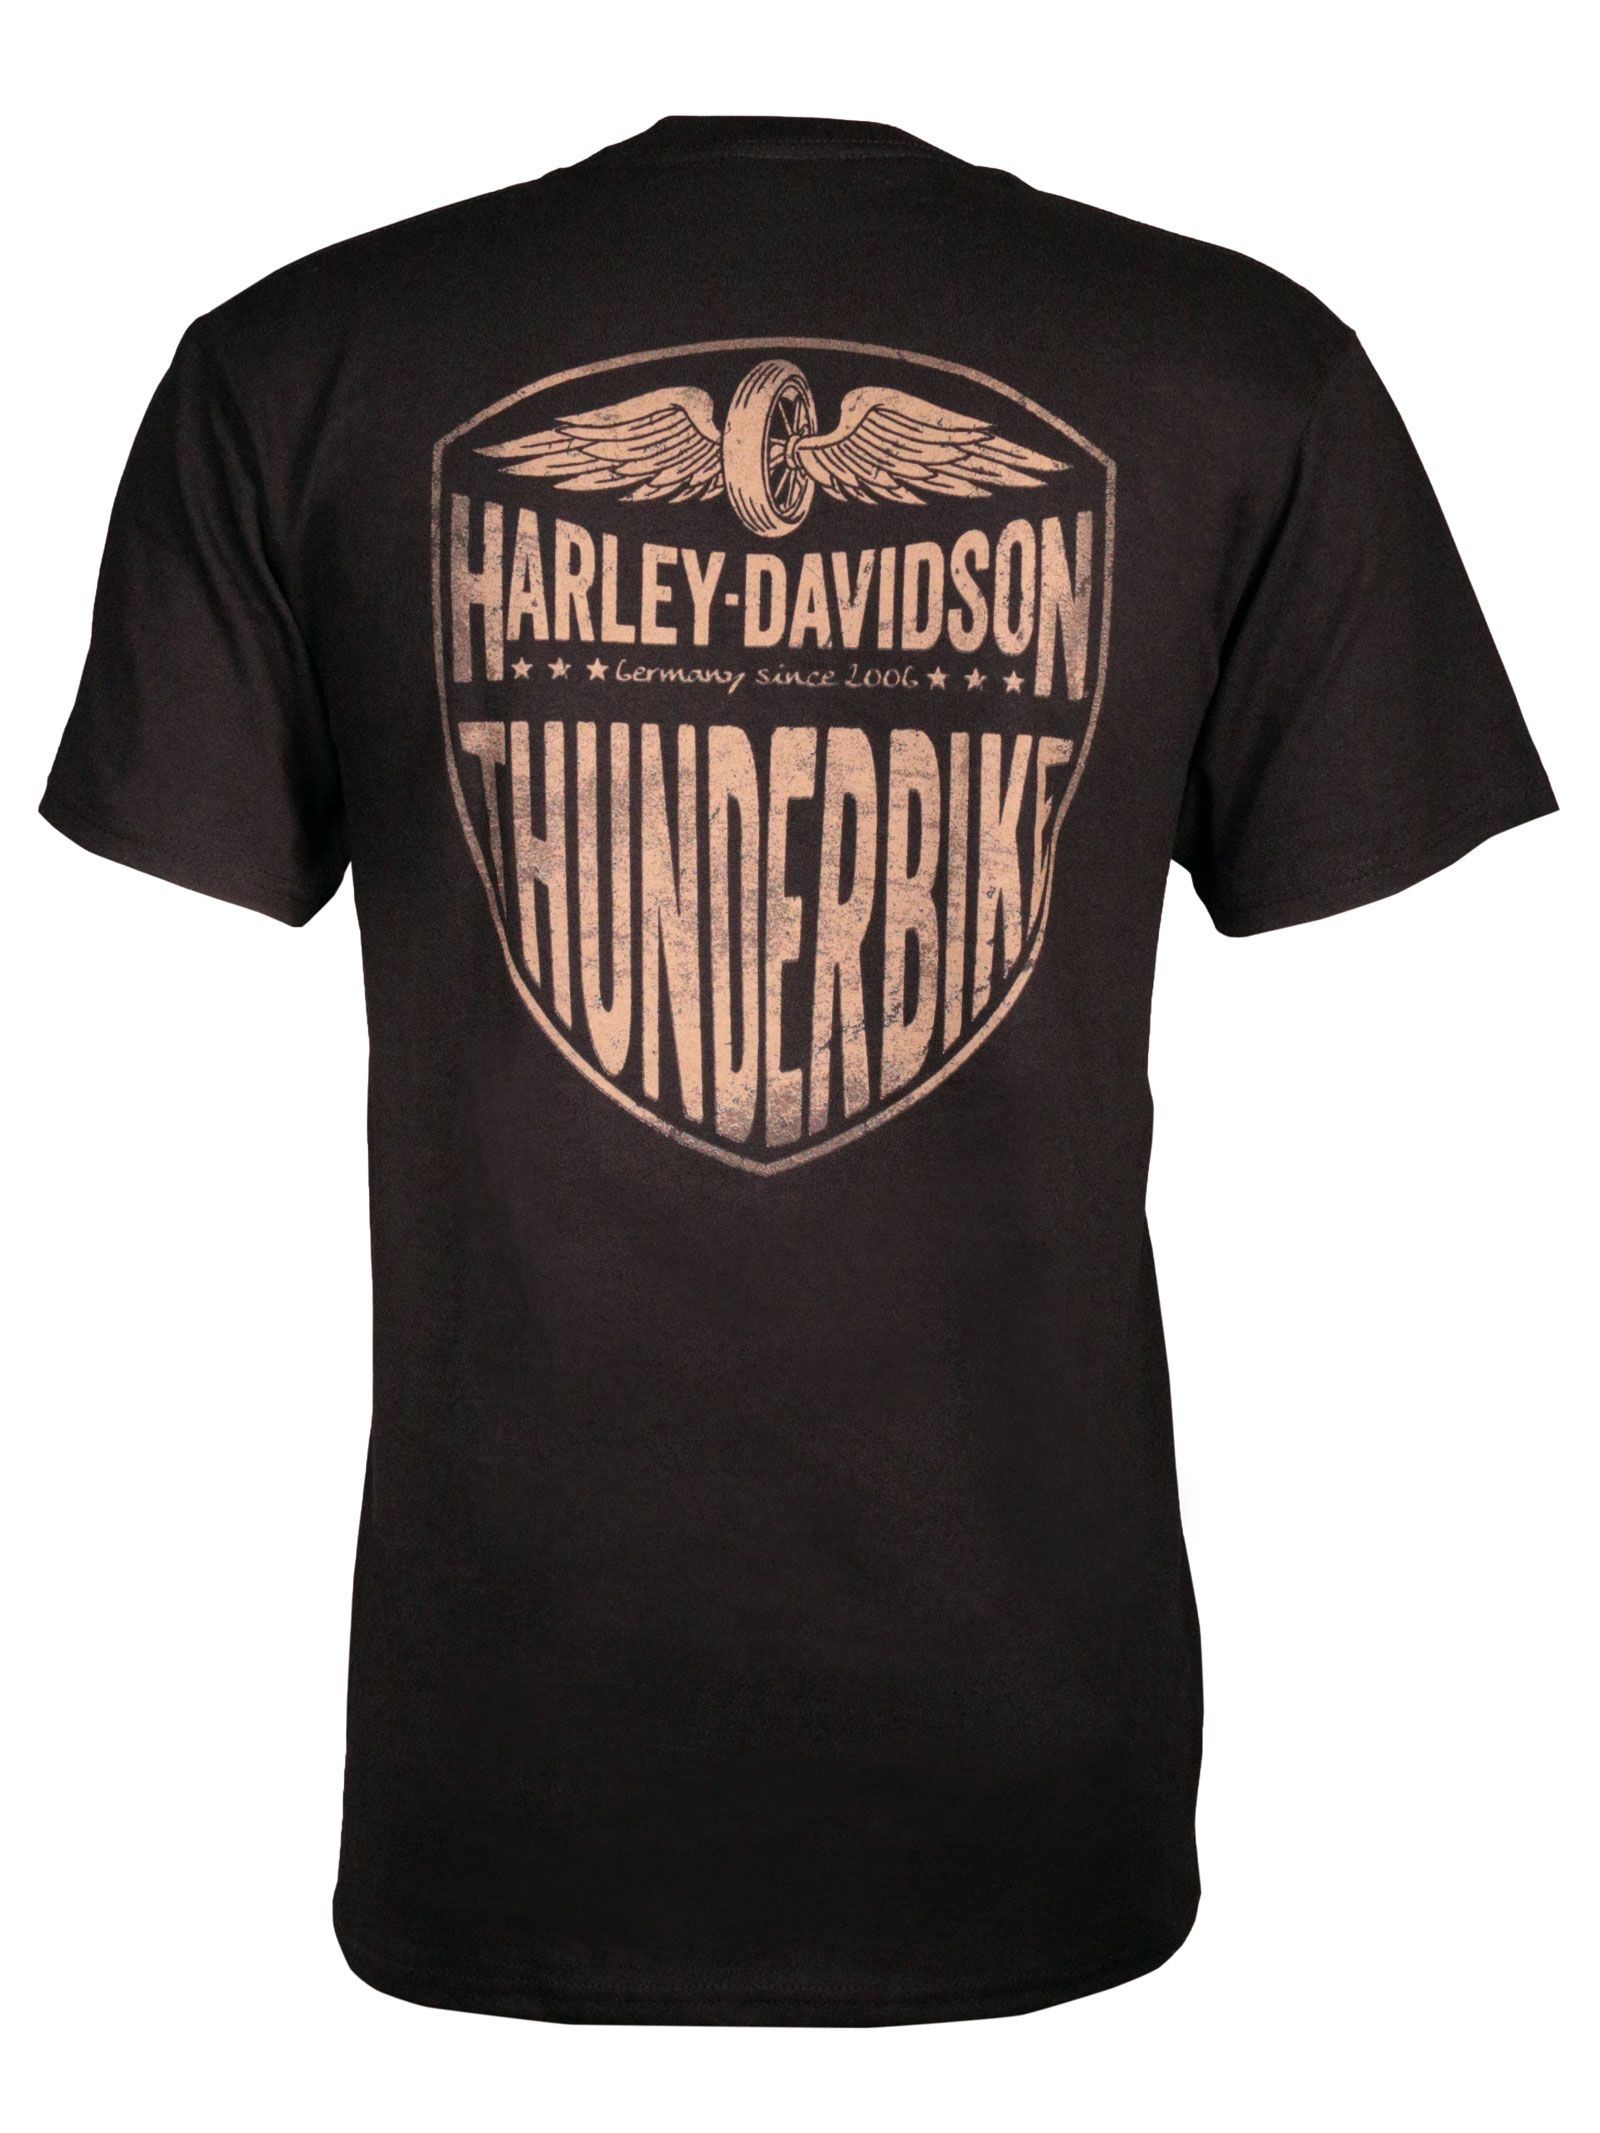 harley davidson t shirt custom options im thunderbike shop. Black Bedroom Furniture Sets. Home Design Ideas